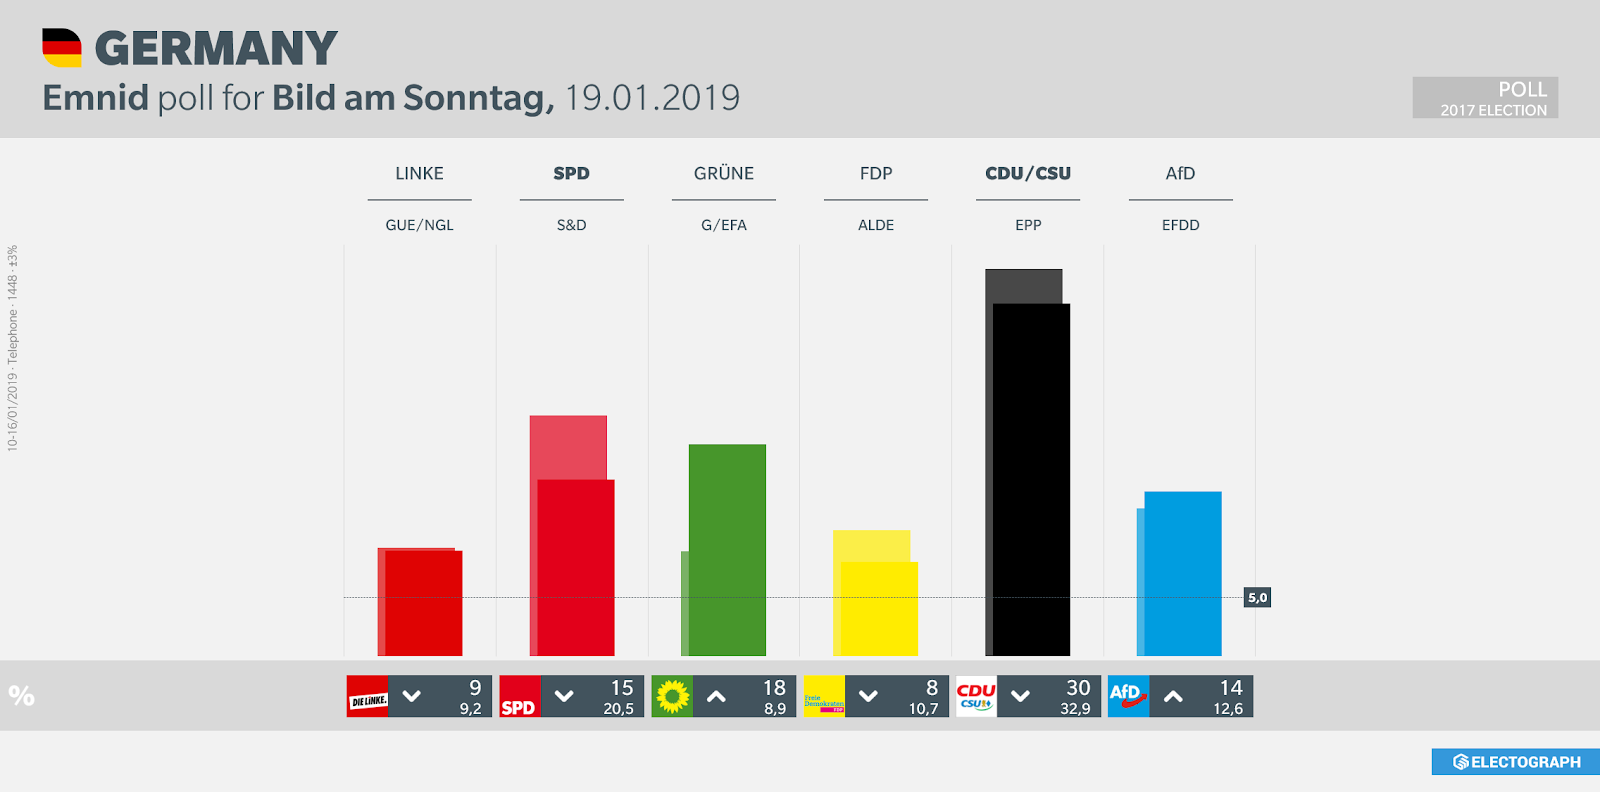 GERMANY: Emnid poll chart for Bild am Sonntag, 19 January 2019